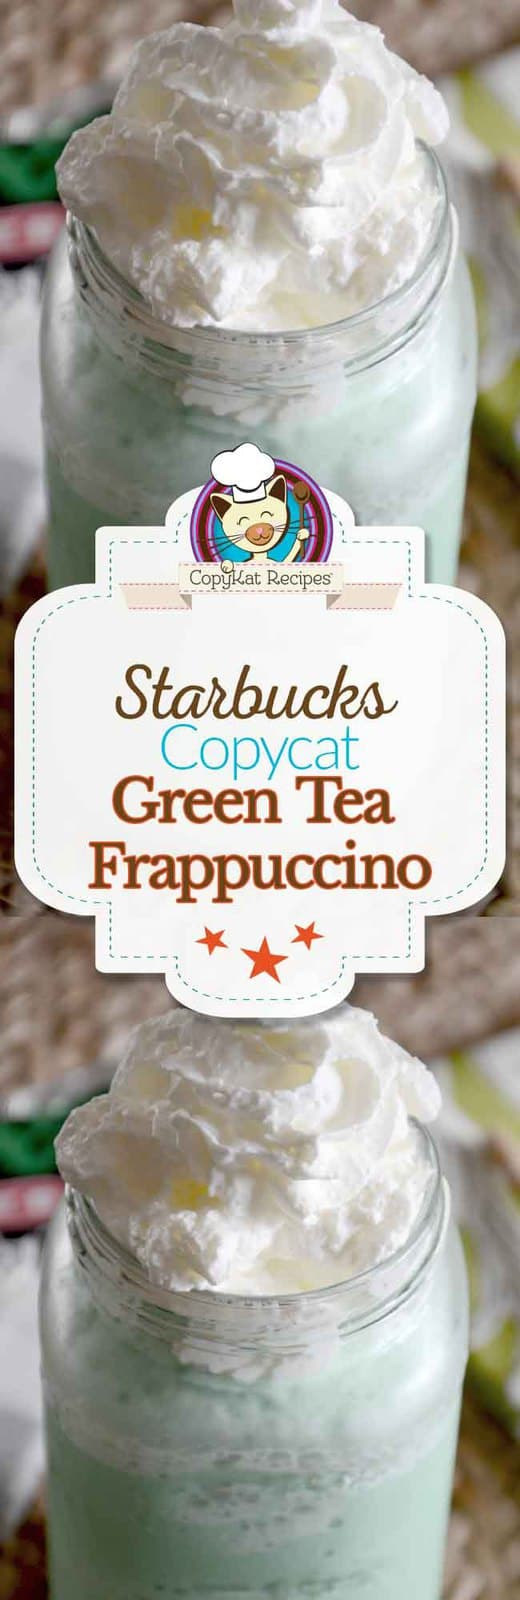 You can make a copycat recipe for the Starbucks Green Tea Frappuccino.